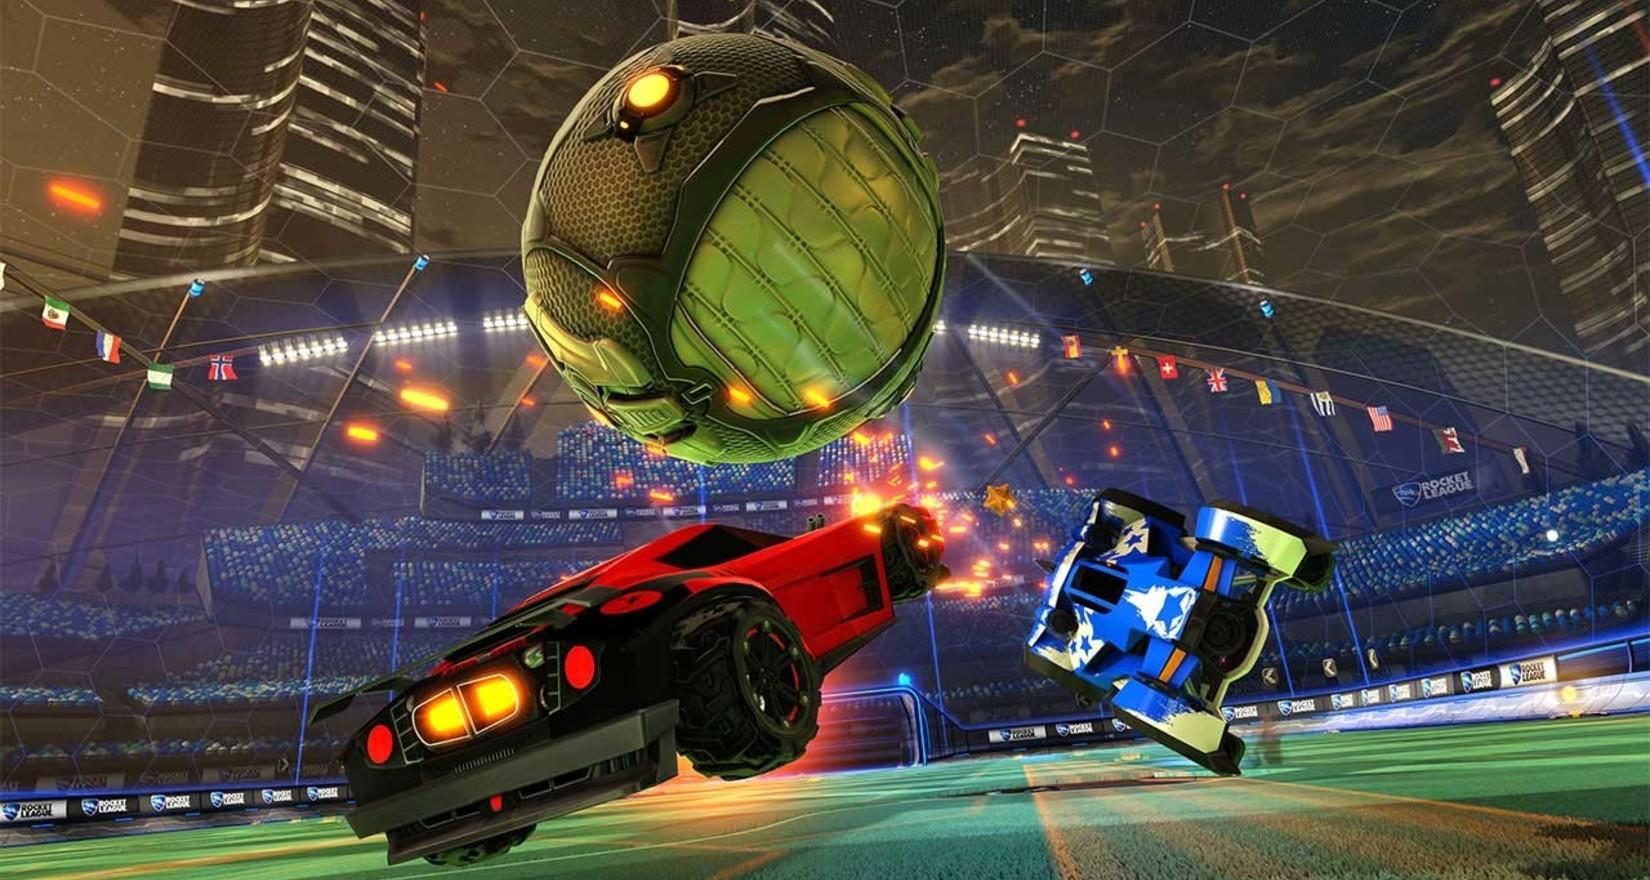 Rocket League Upgrades for Xbox One X Image